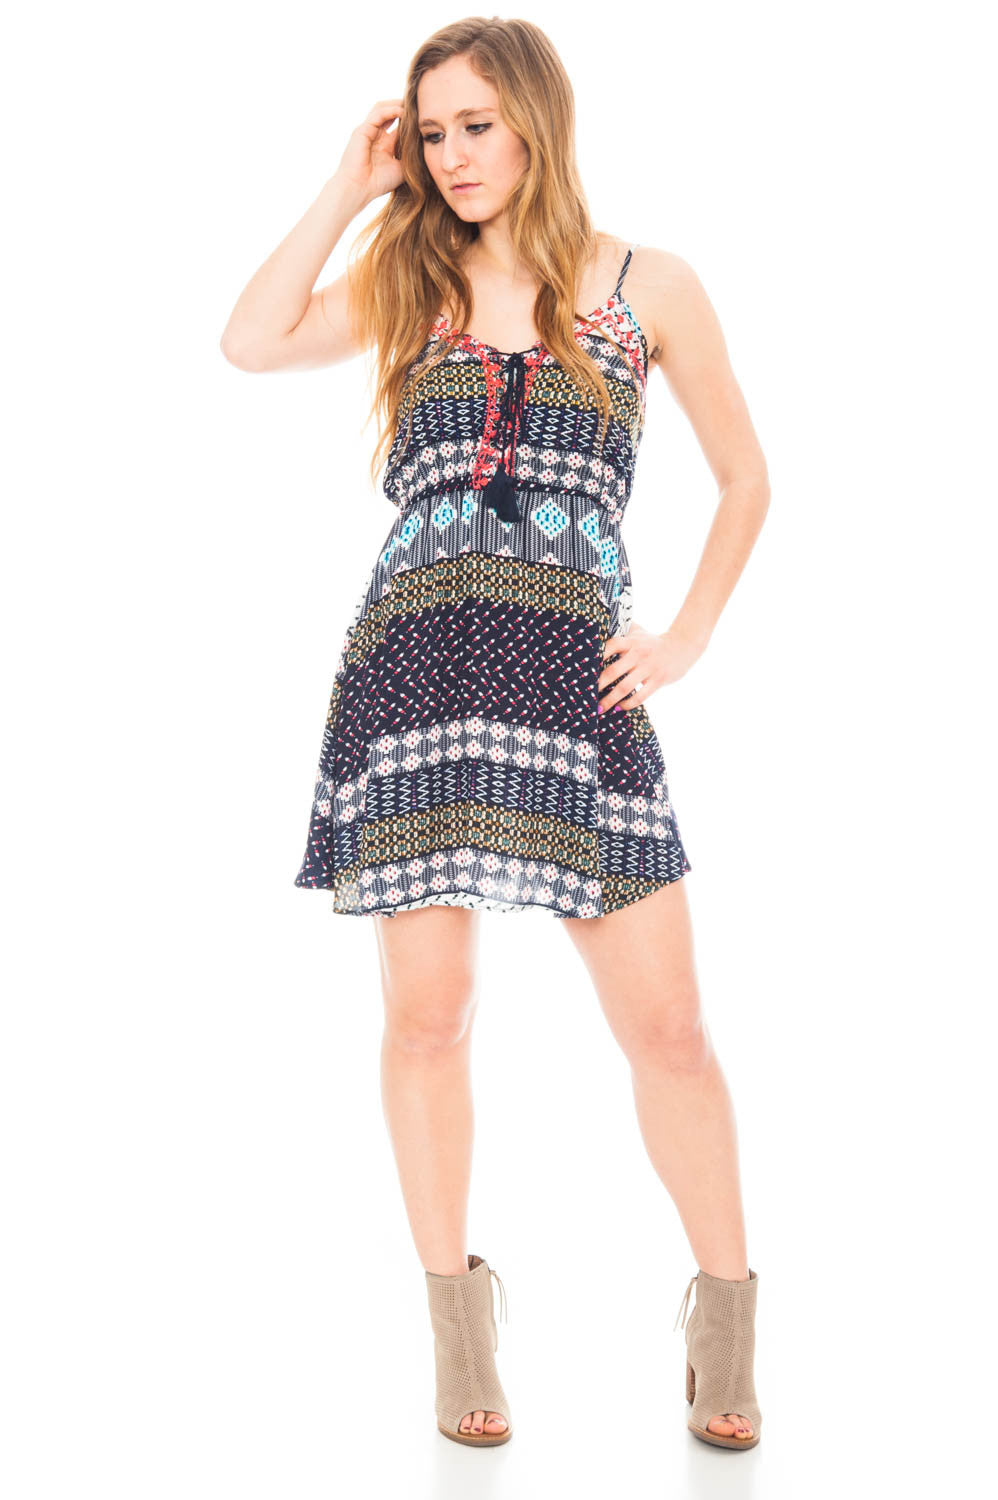 Dress - Empire Waist Dress with Lace Up Front and Tassels